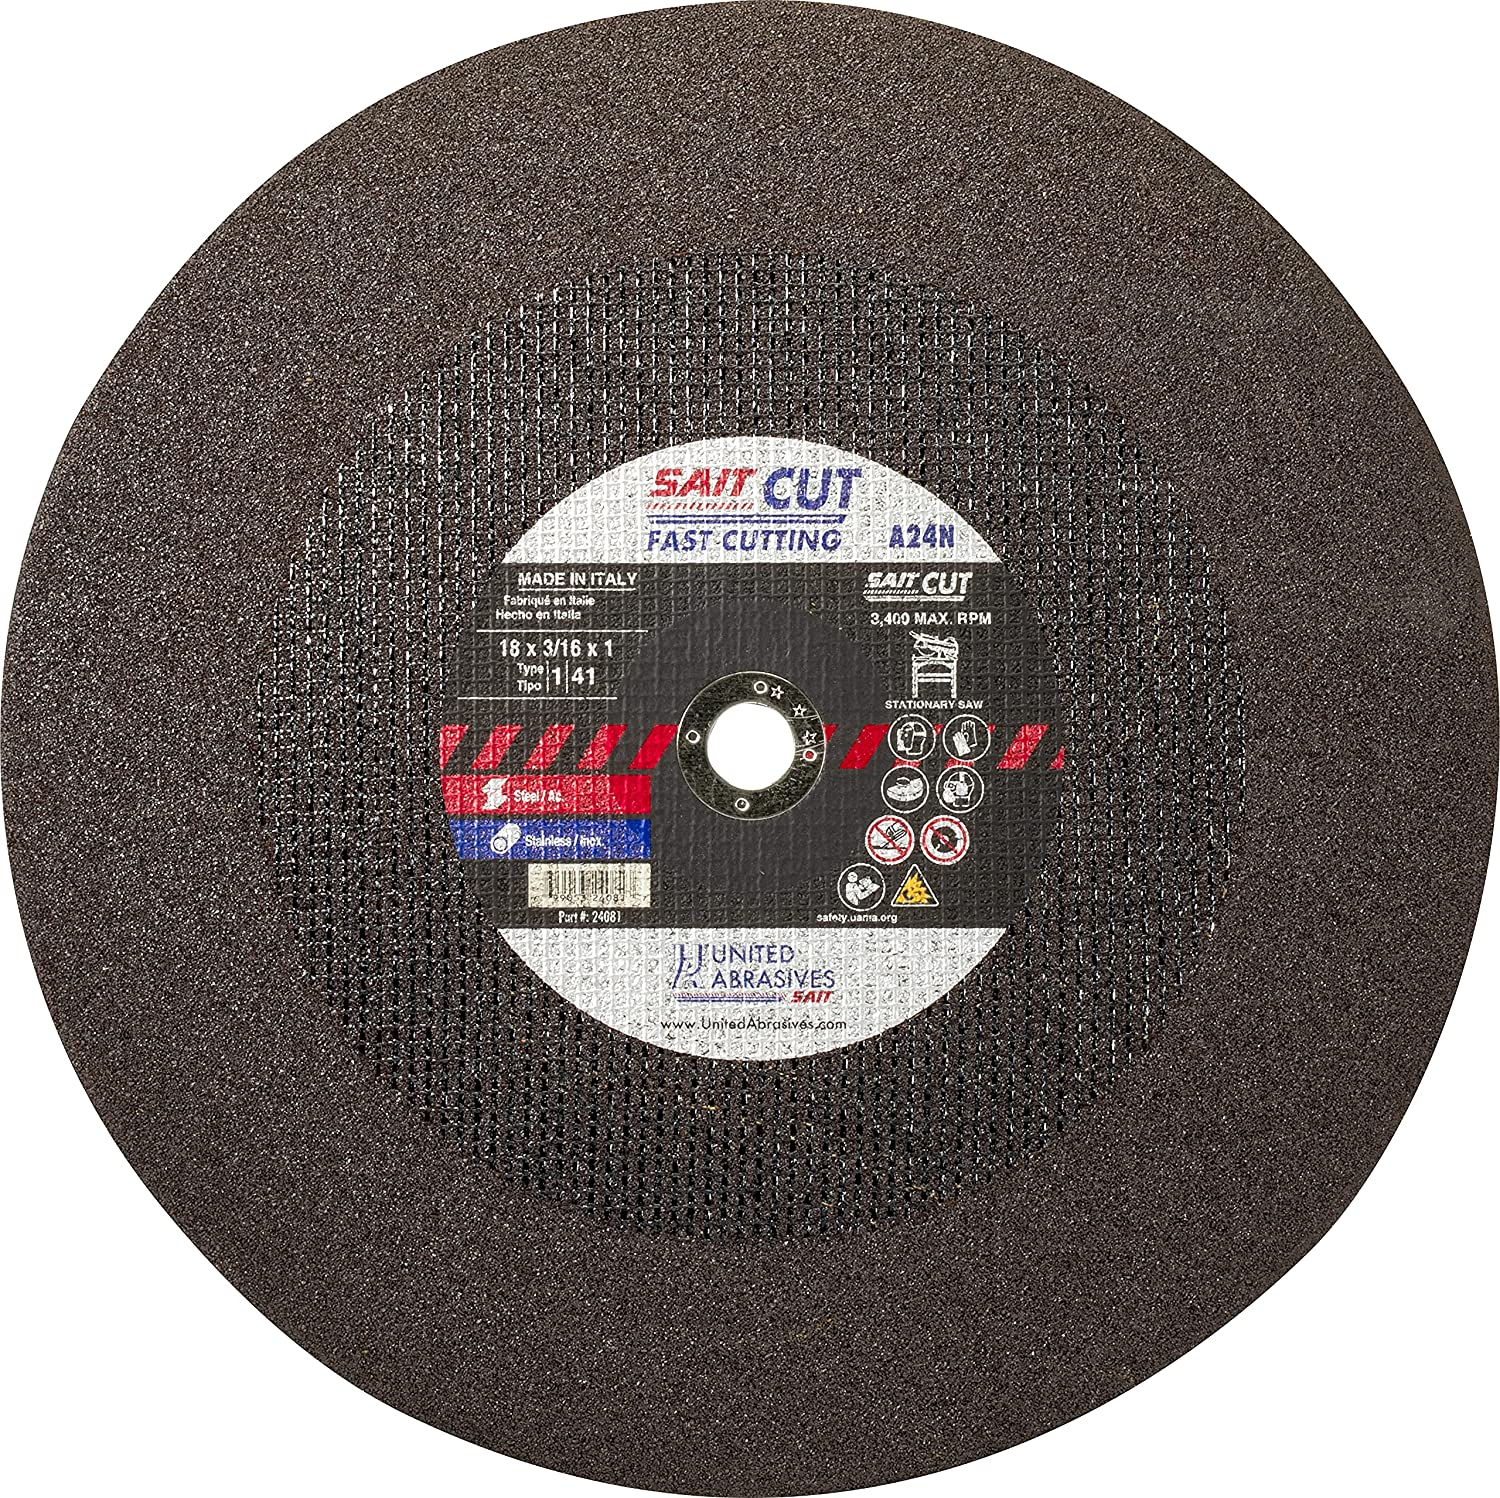 United Abrasives Excellence SAIT 24081 18X3 16X1 Metal St New arrival Fast Cutting A24N